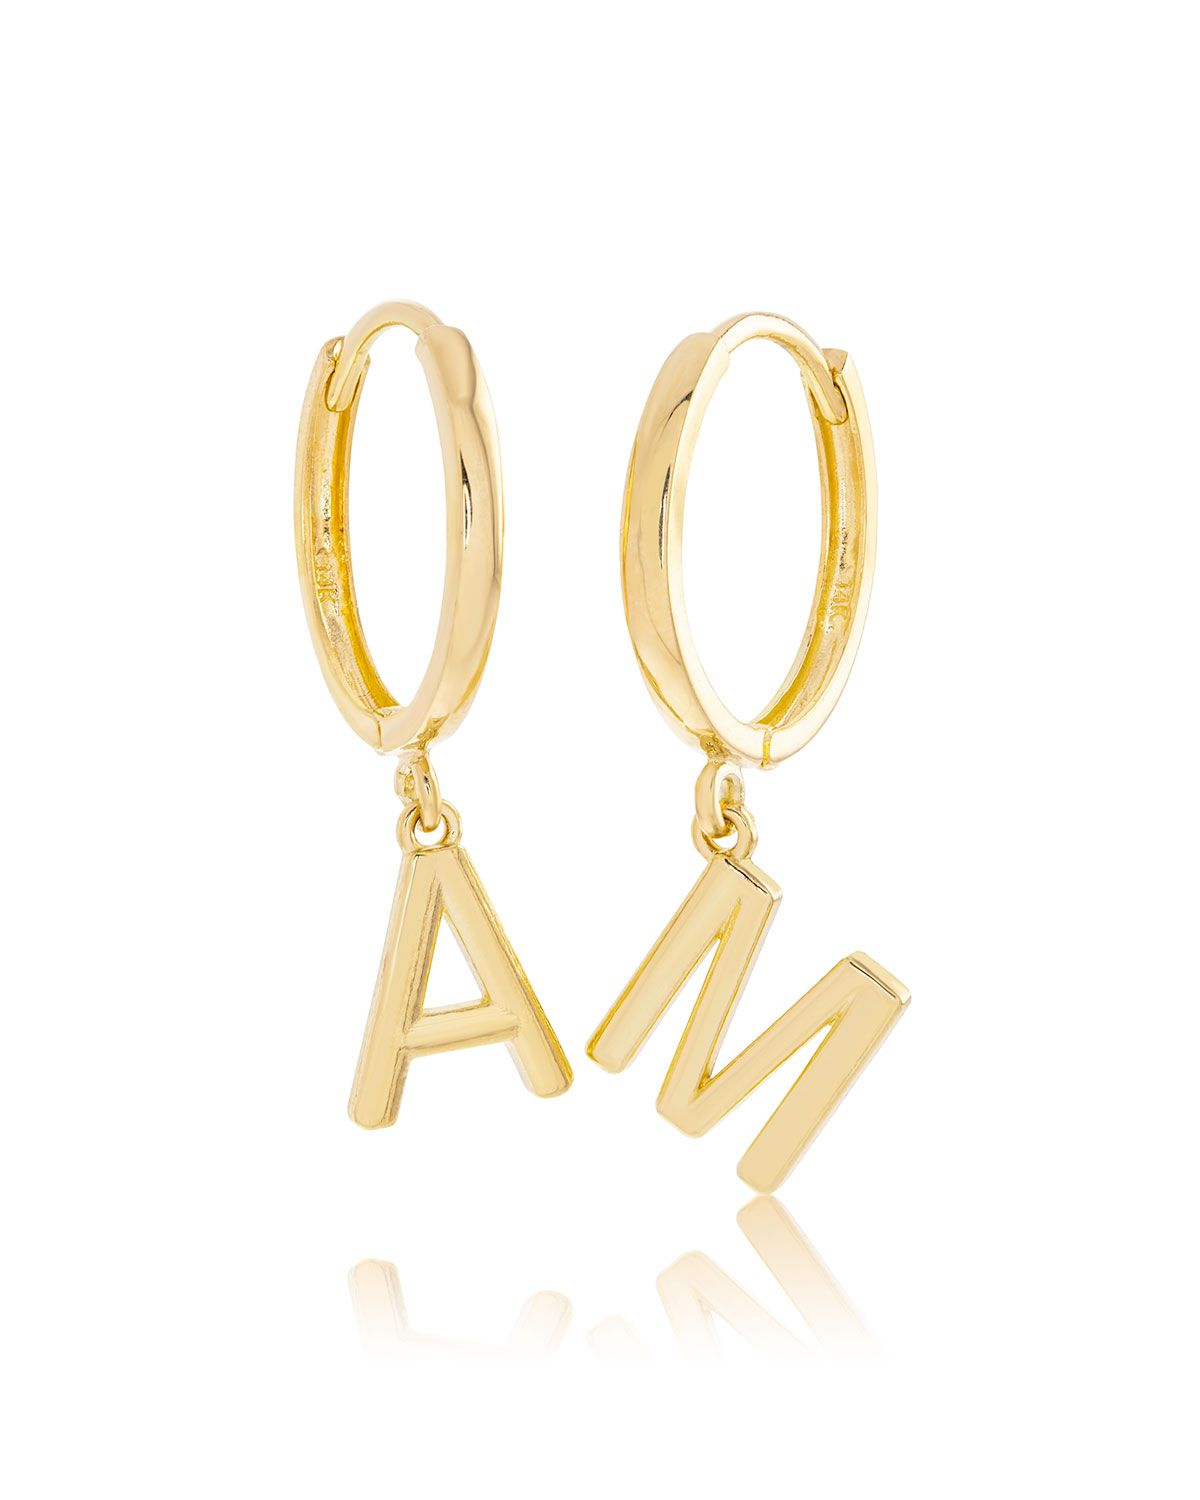 Stone And Strand 14k Gold Initial Huggie Earrings In 2020 Initial Earrings Huggies Earrings Gold Initial